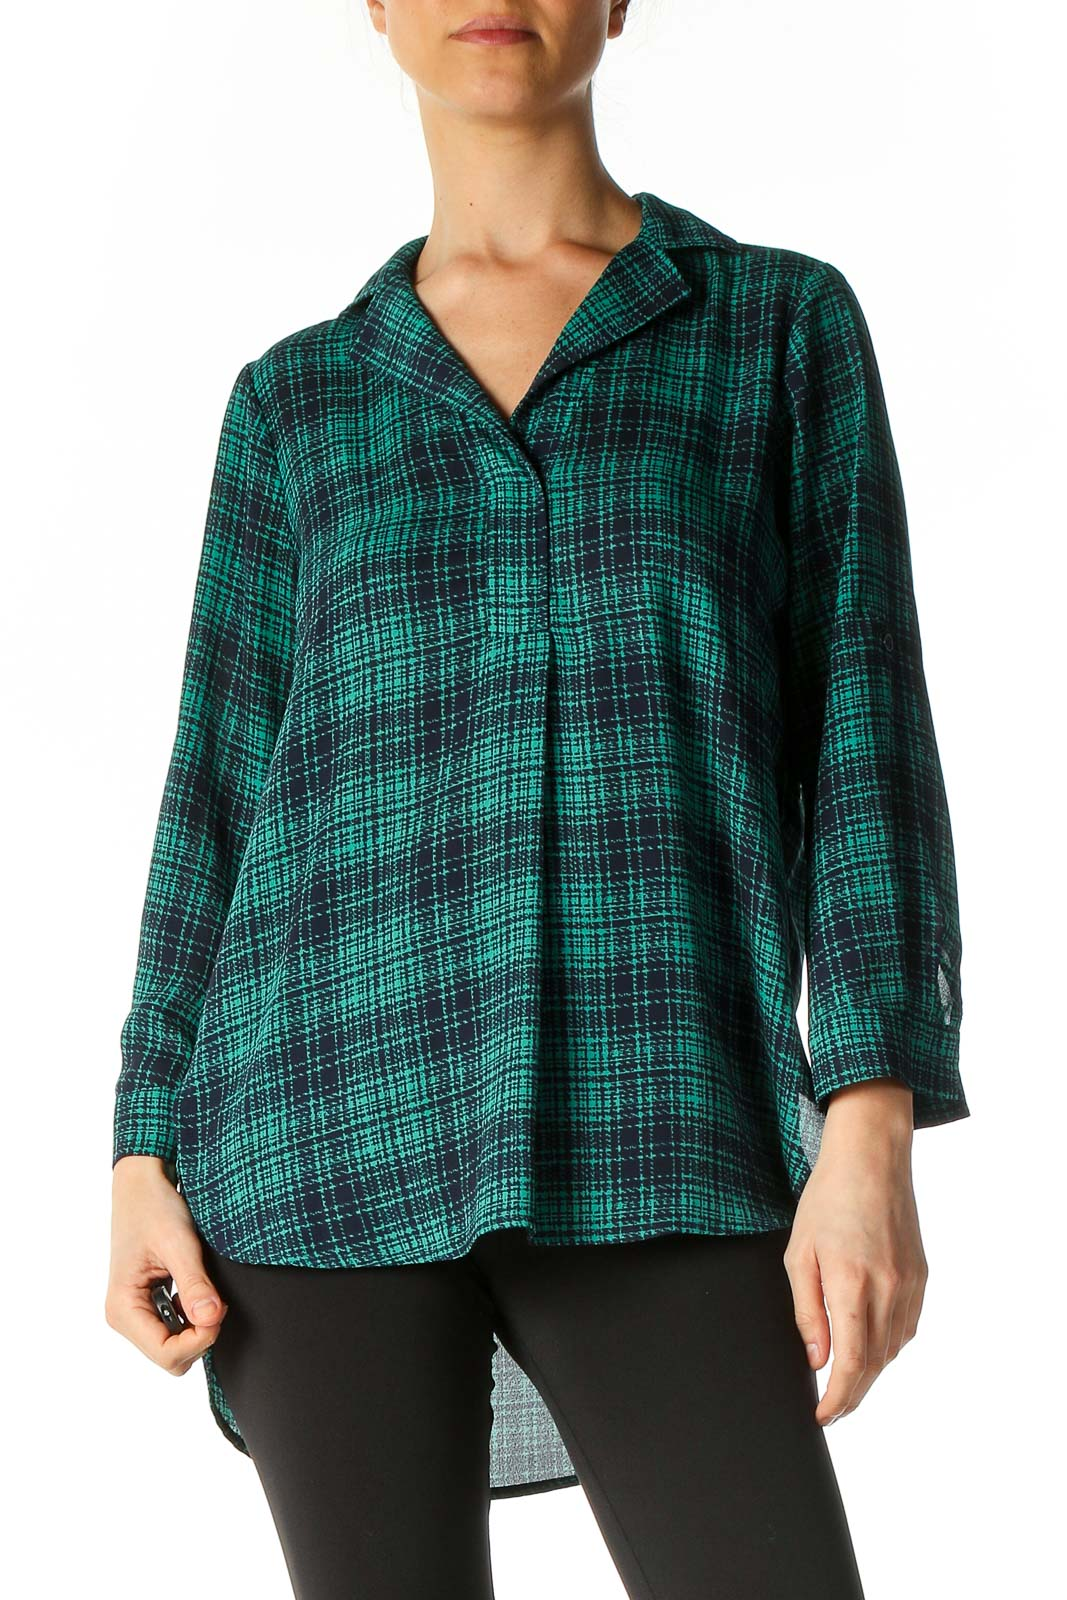 Green Checkered Casual Blouse Front